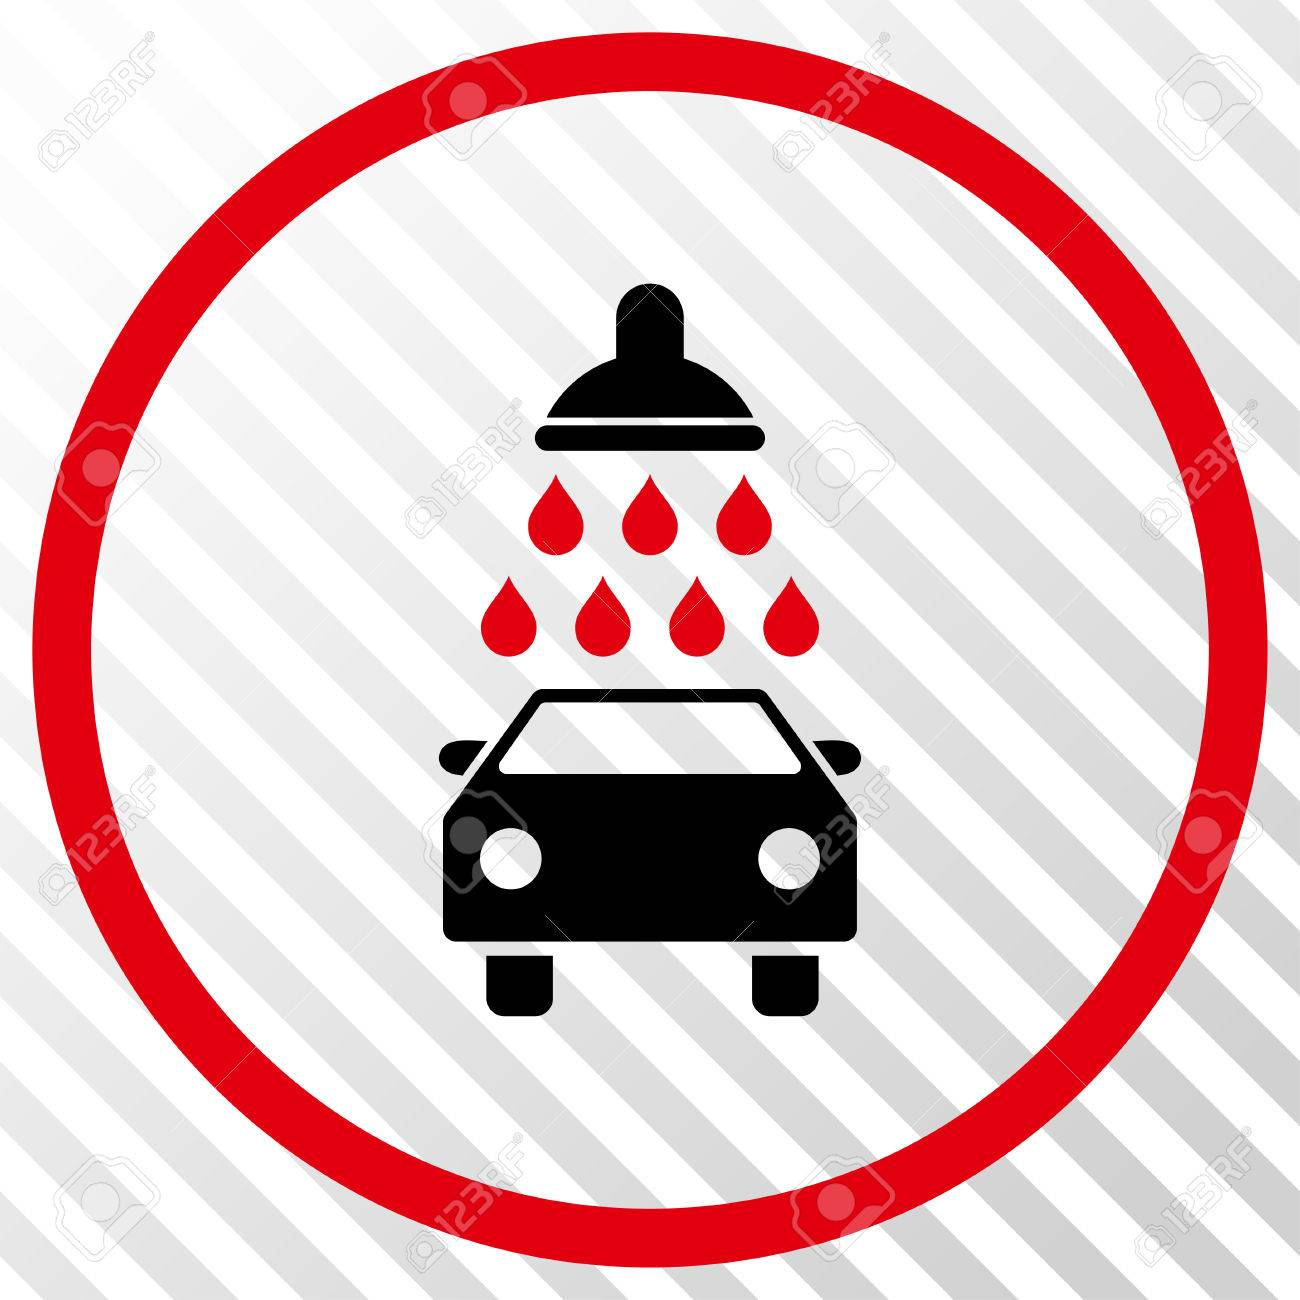 Car shower vector icon image style is a flat intensive red and car shower vector icon image style is a flat intensive red and black iconic symbol biocorpaavc Choice Image